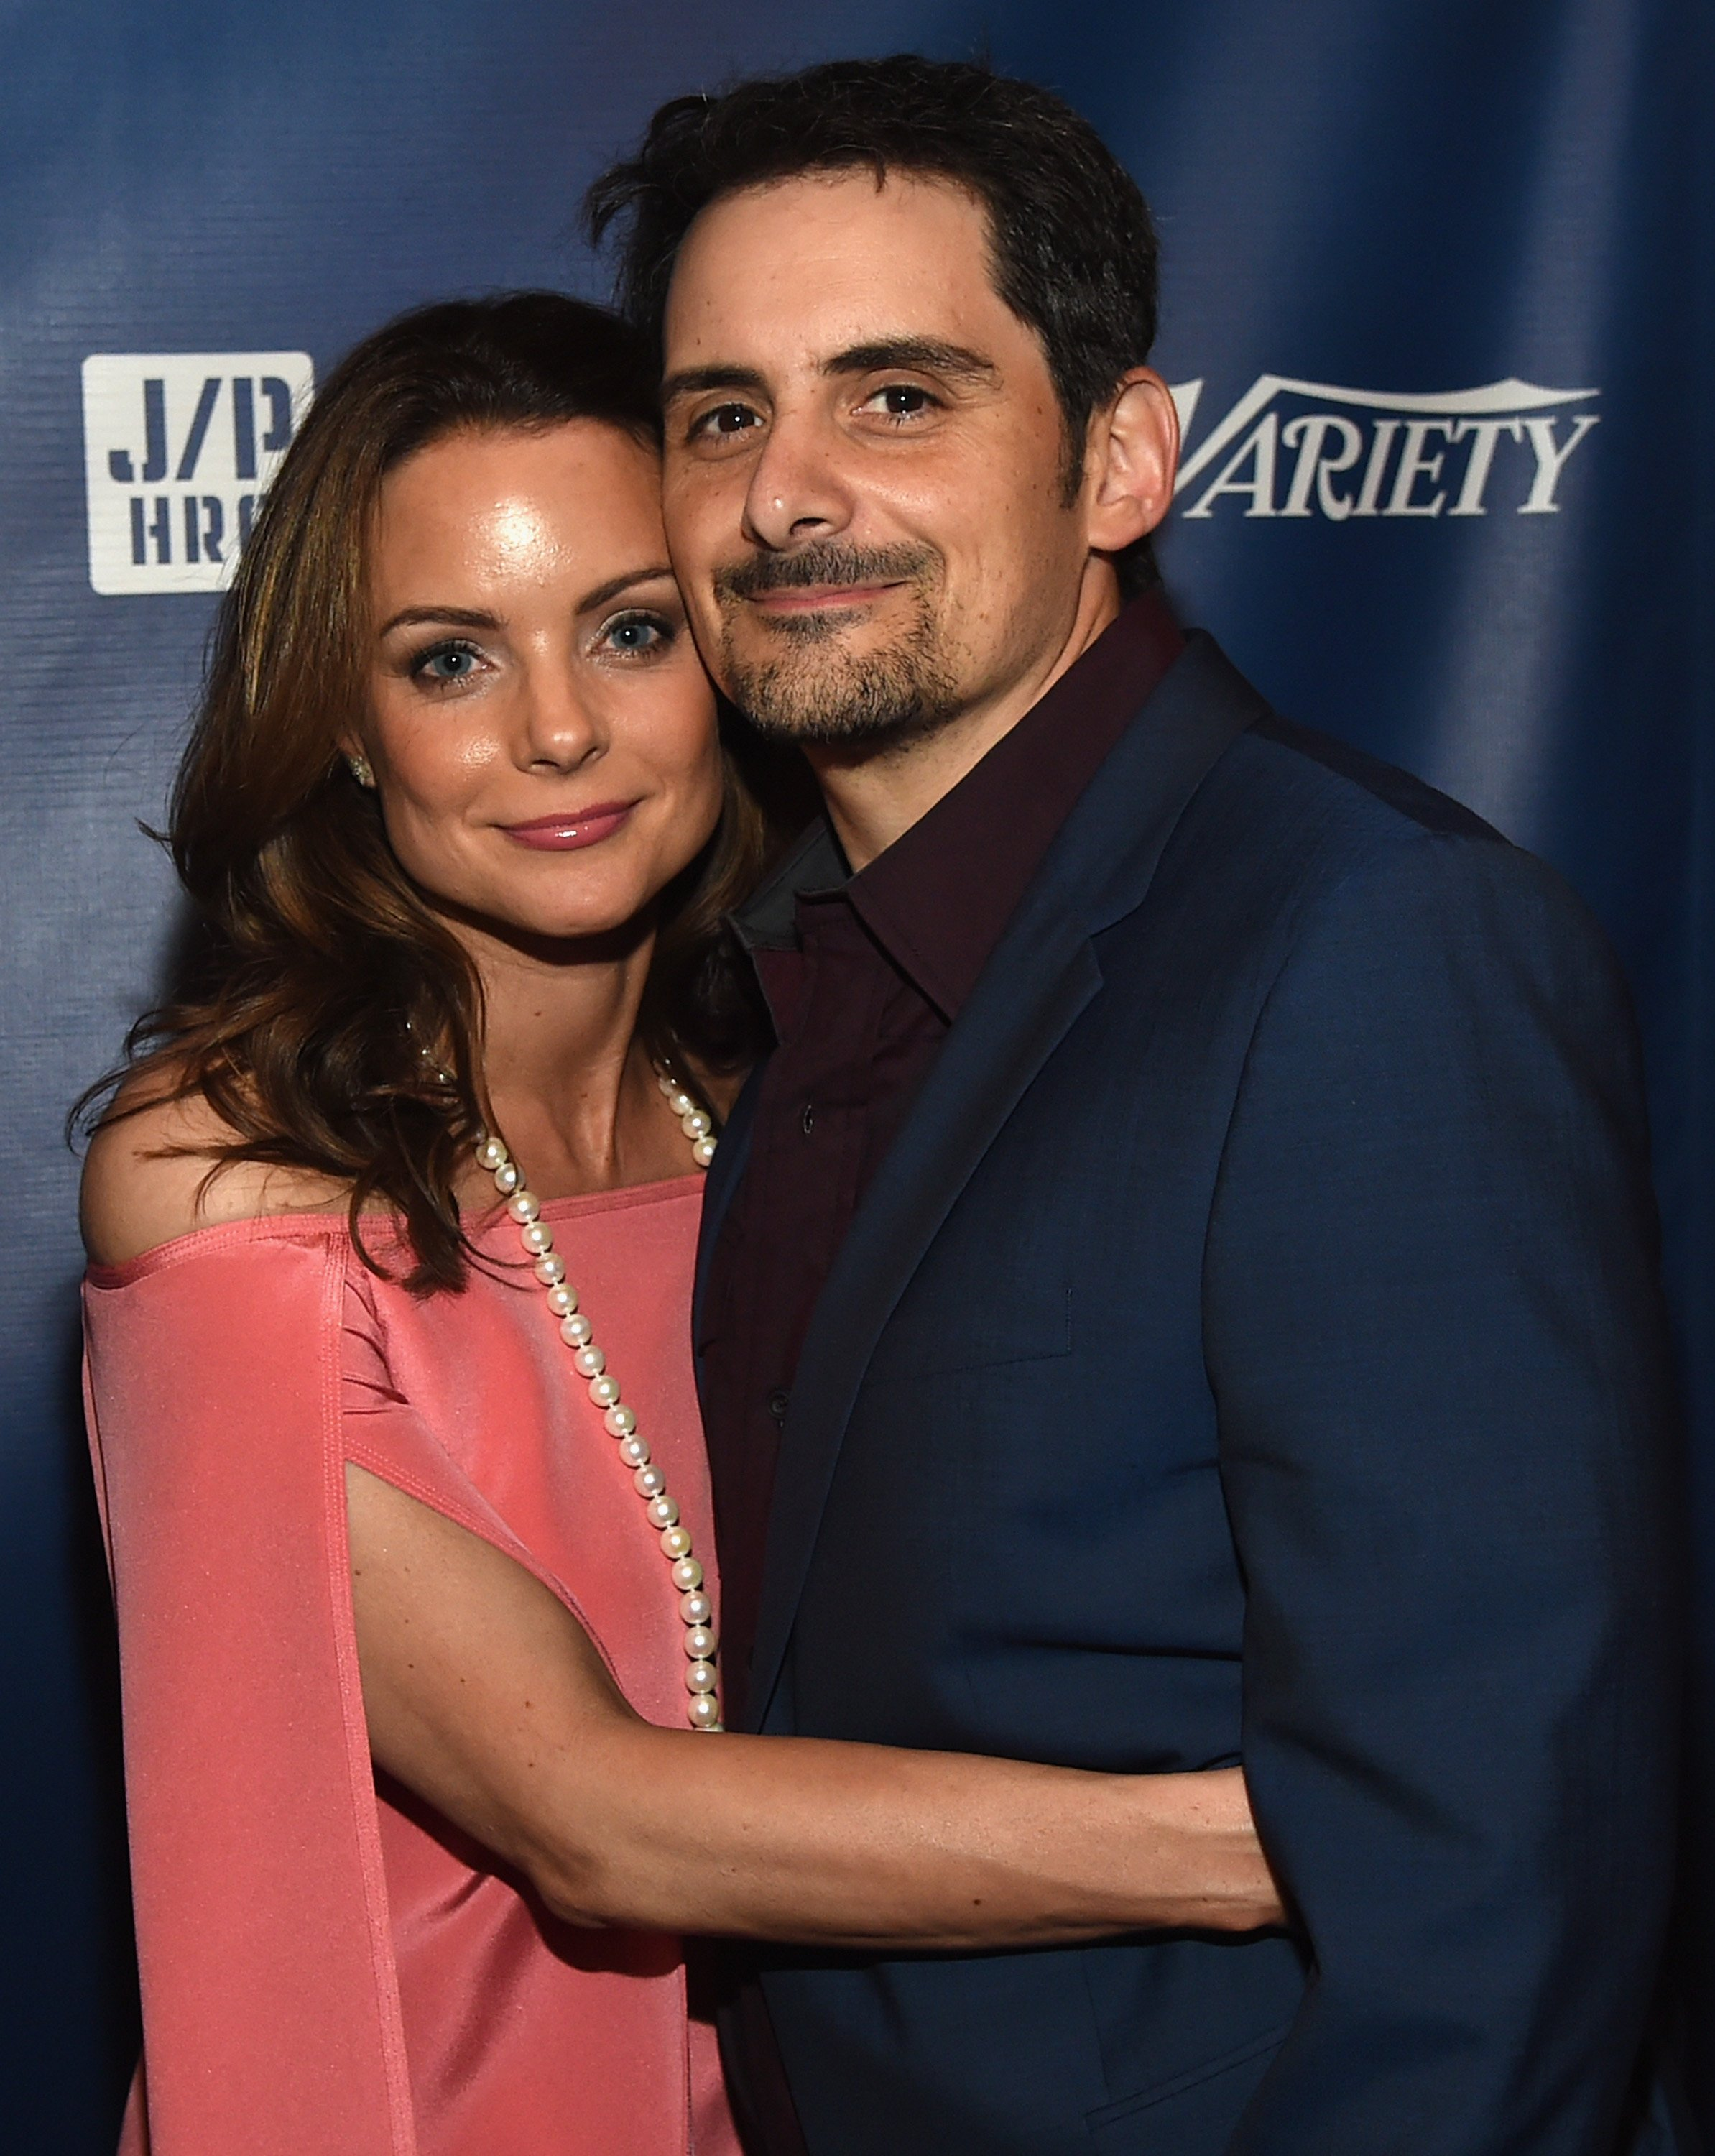 Brad Paisley and wife, Kimberly Williams-Paisley, at a benefit concert for the Haitian Relief Organization. | Photo: Getty Images.